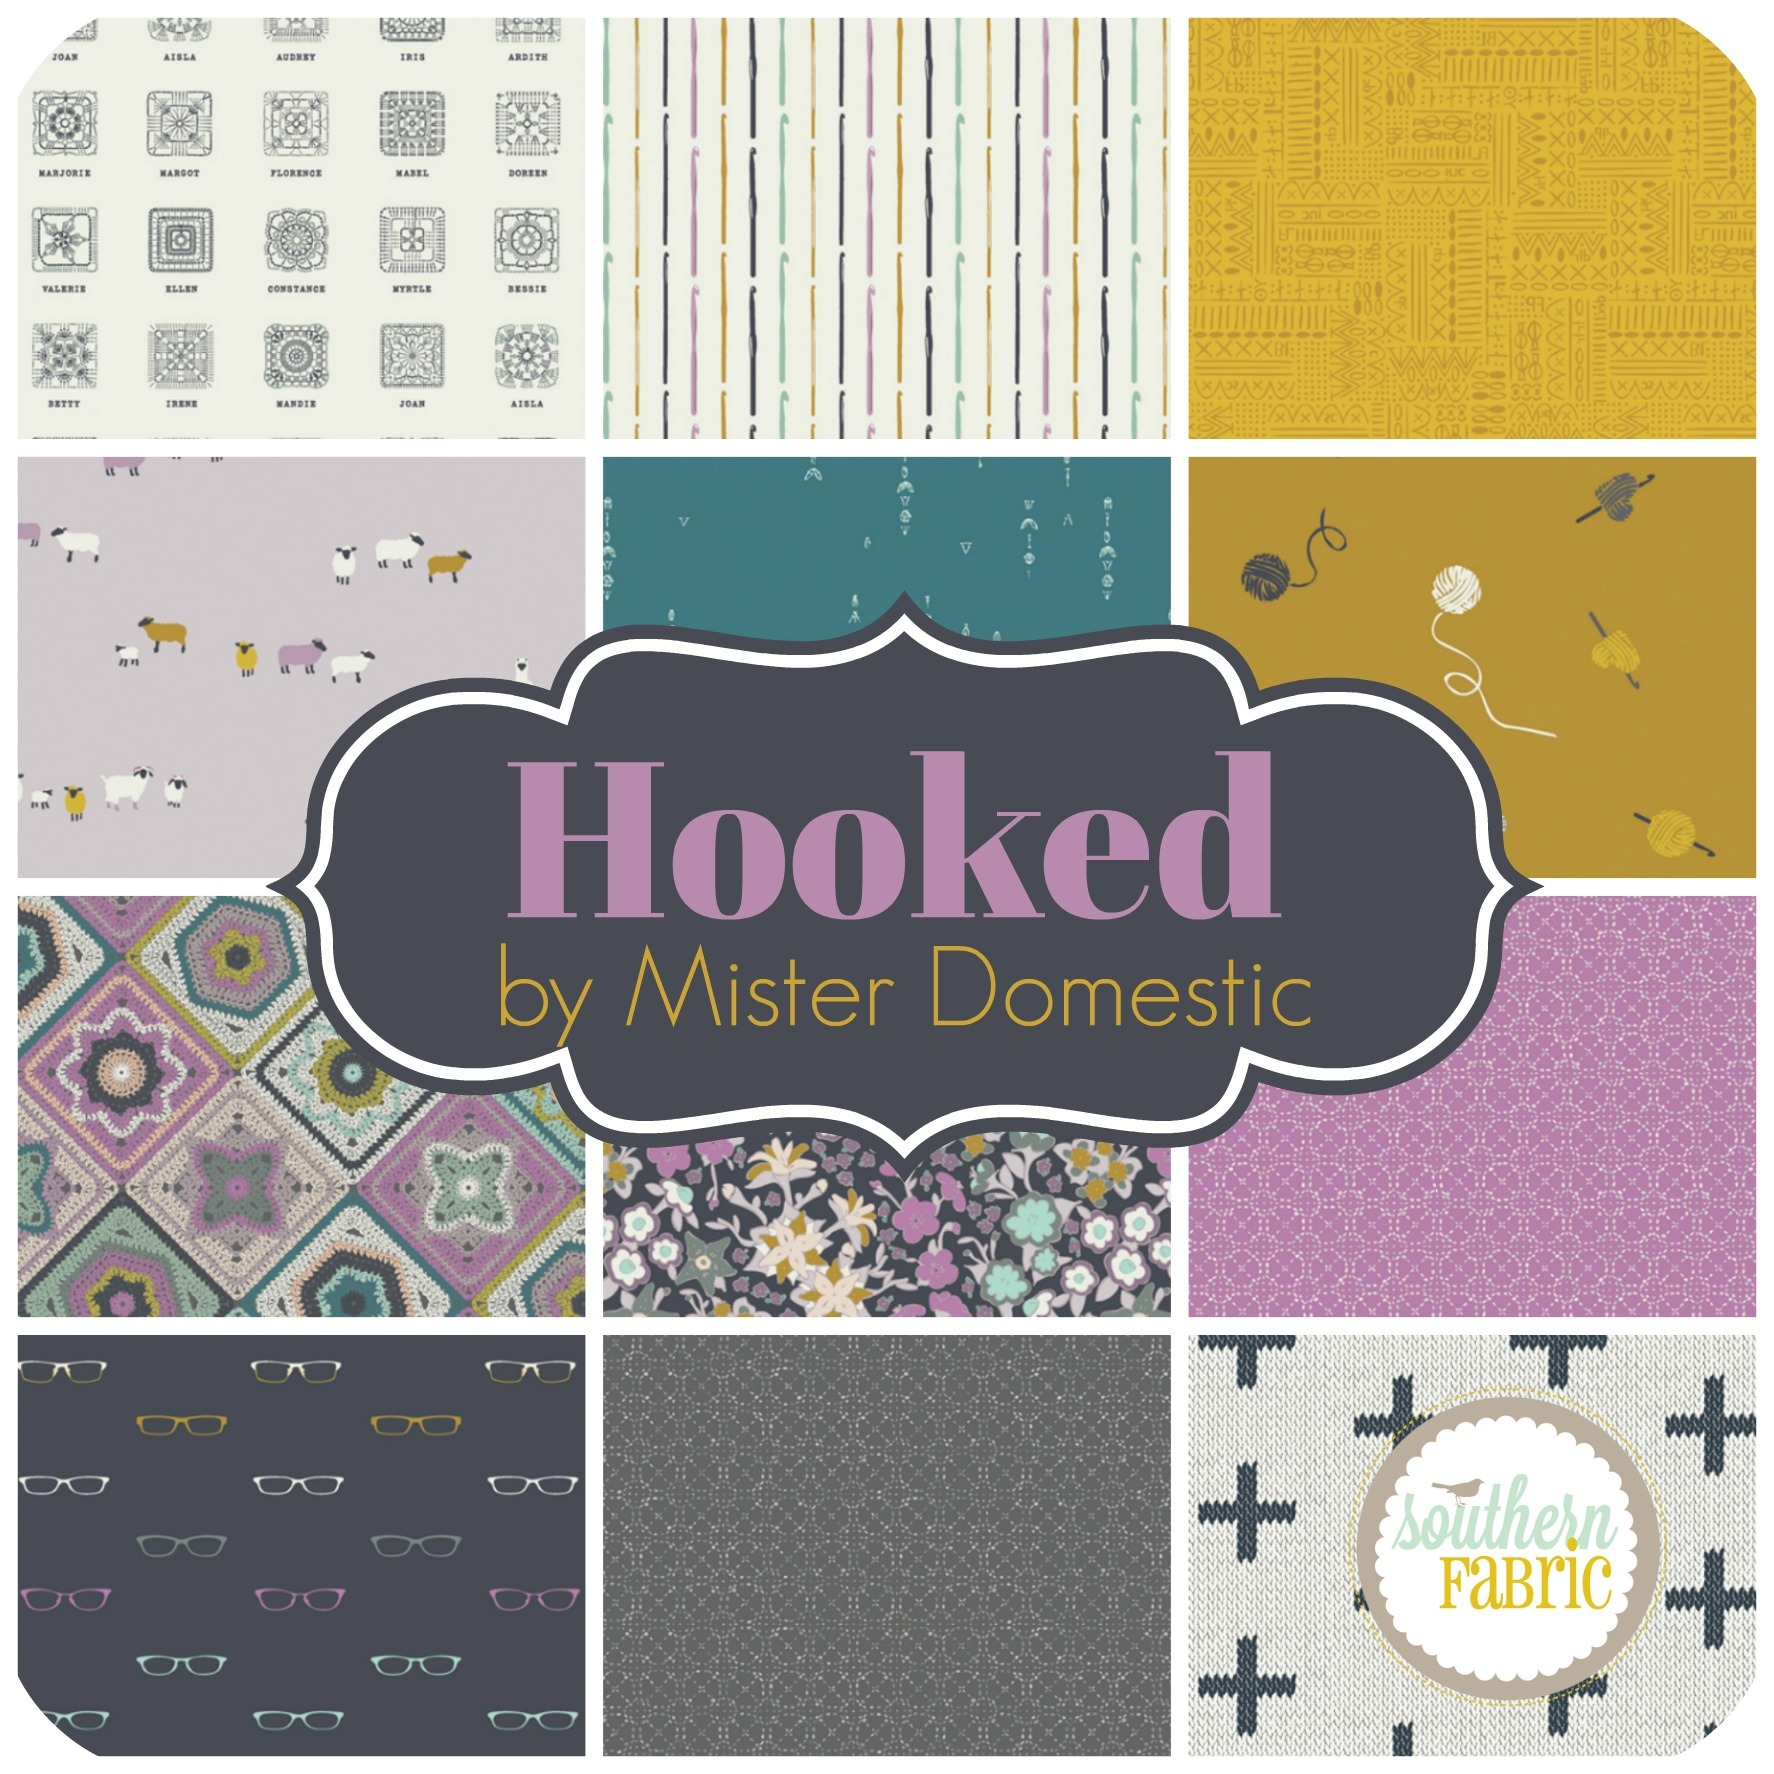 Hooked by Mister Domestic